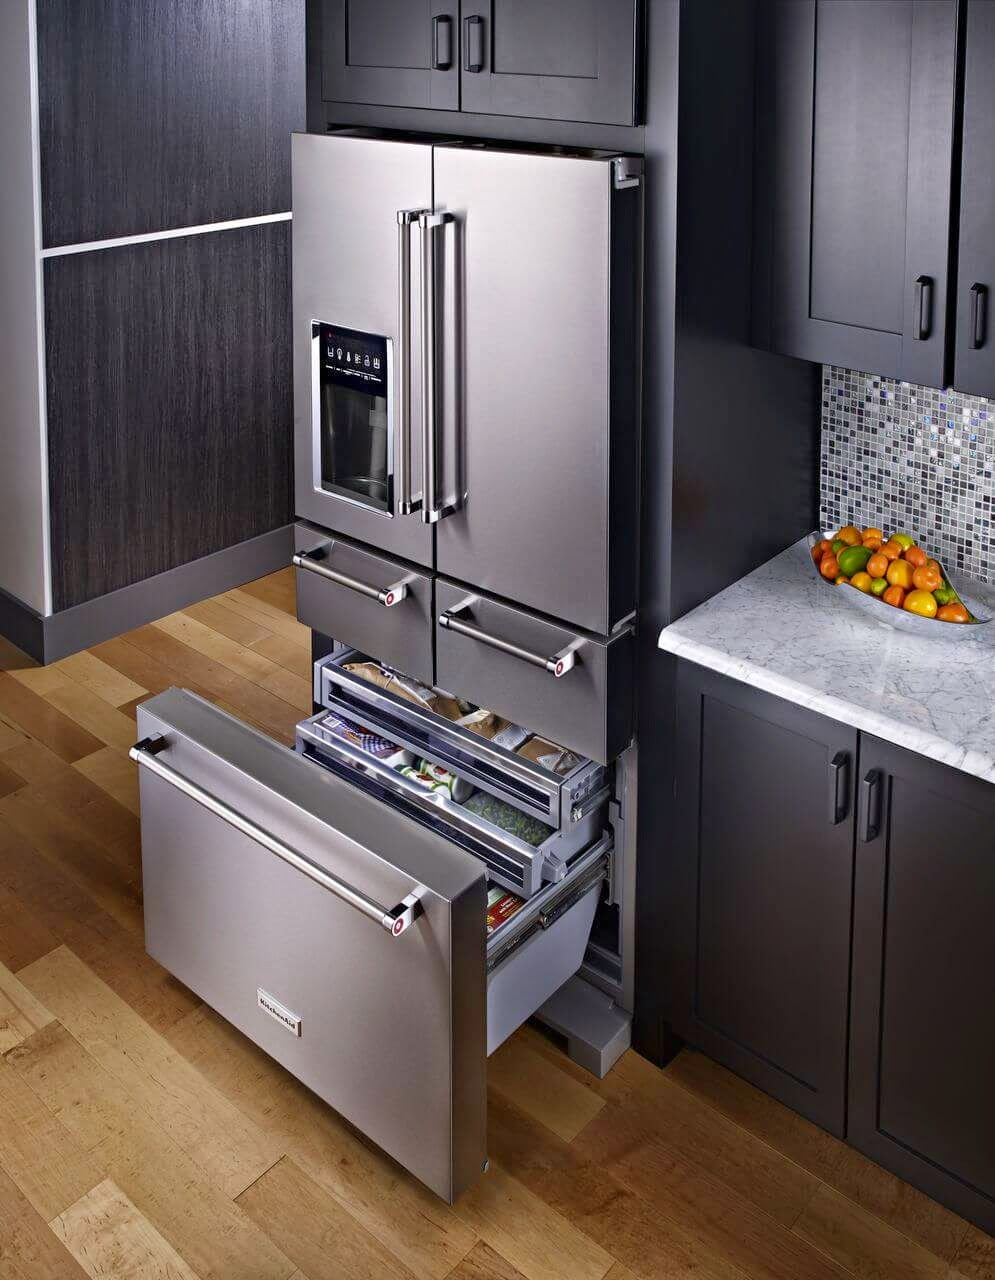 //.appliancereports.com & 2015 KitchenAid 5 Door Fridge - Informative Kitchen Appliance Reports